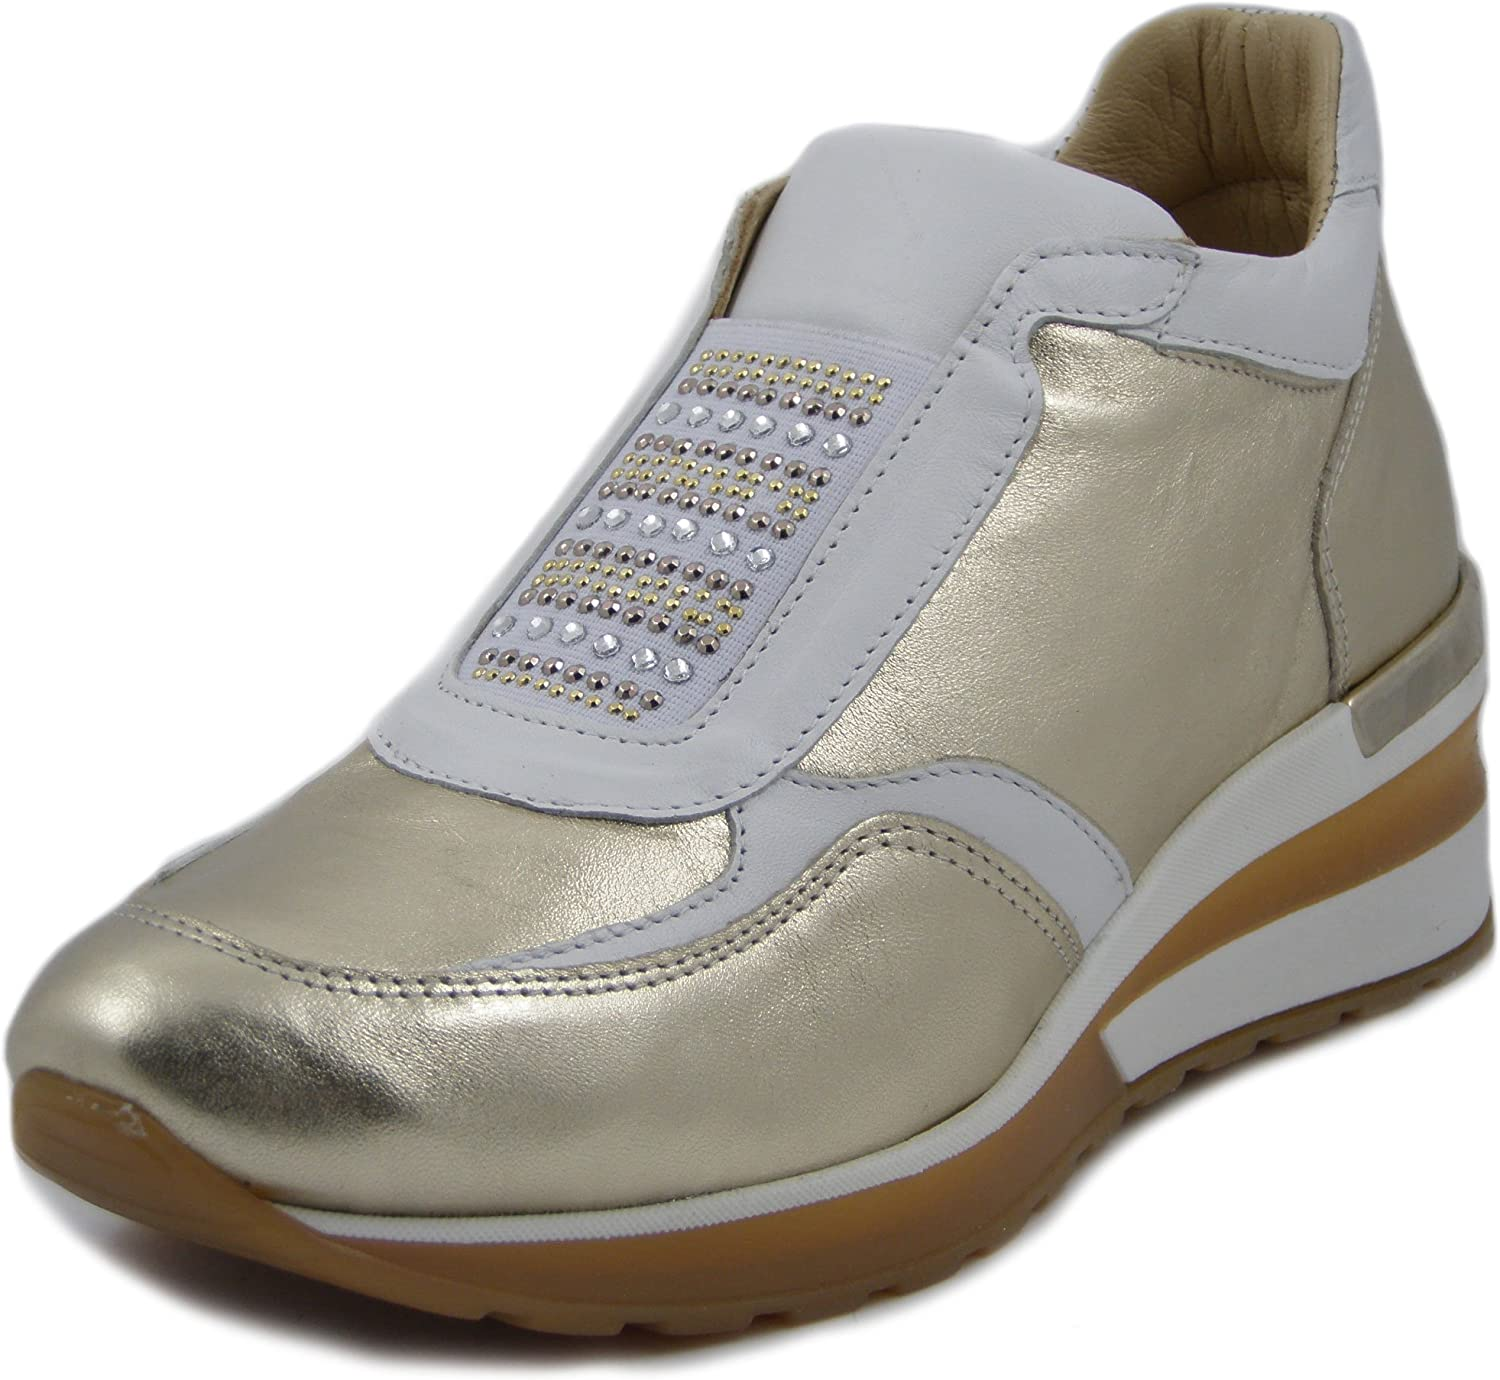 Exton, Slipon in Pelle Coloreee Platino Bianco, Zeppa 5cm,E07P